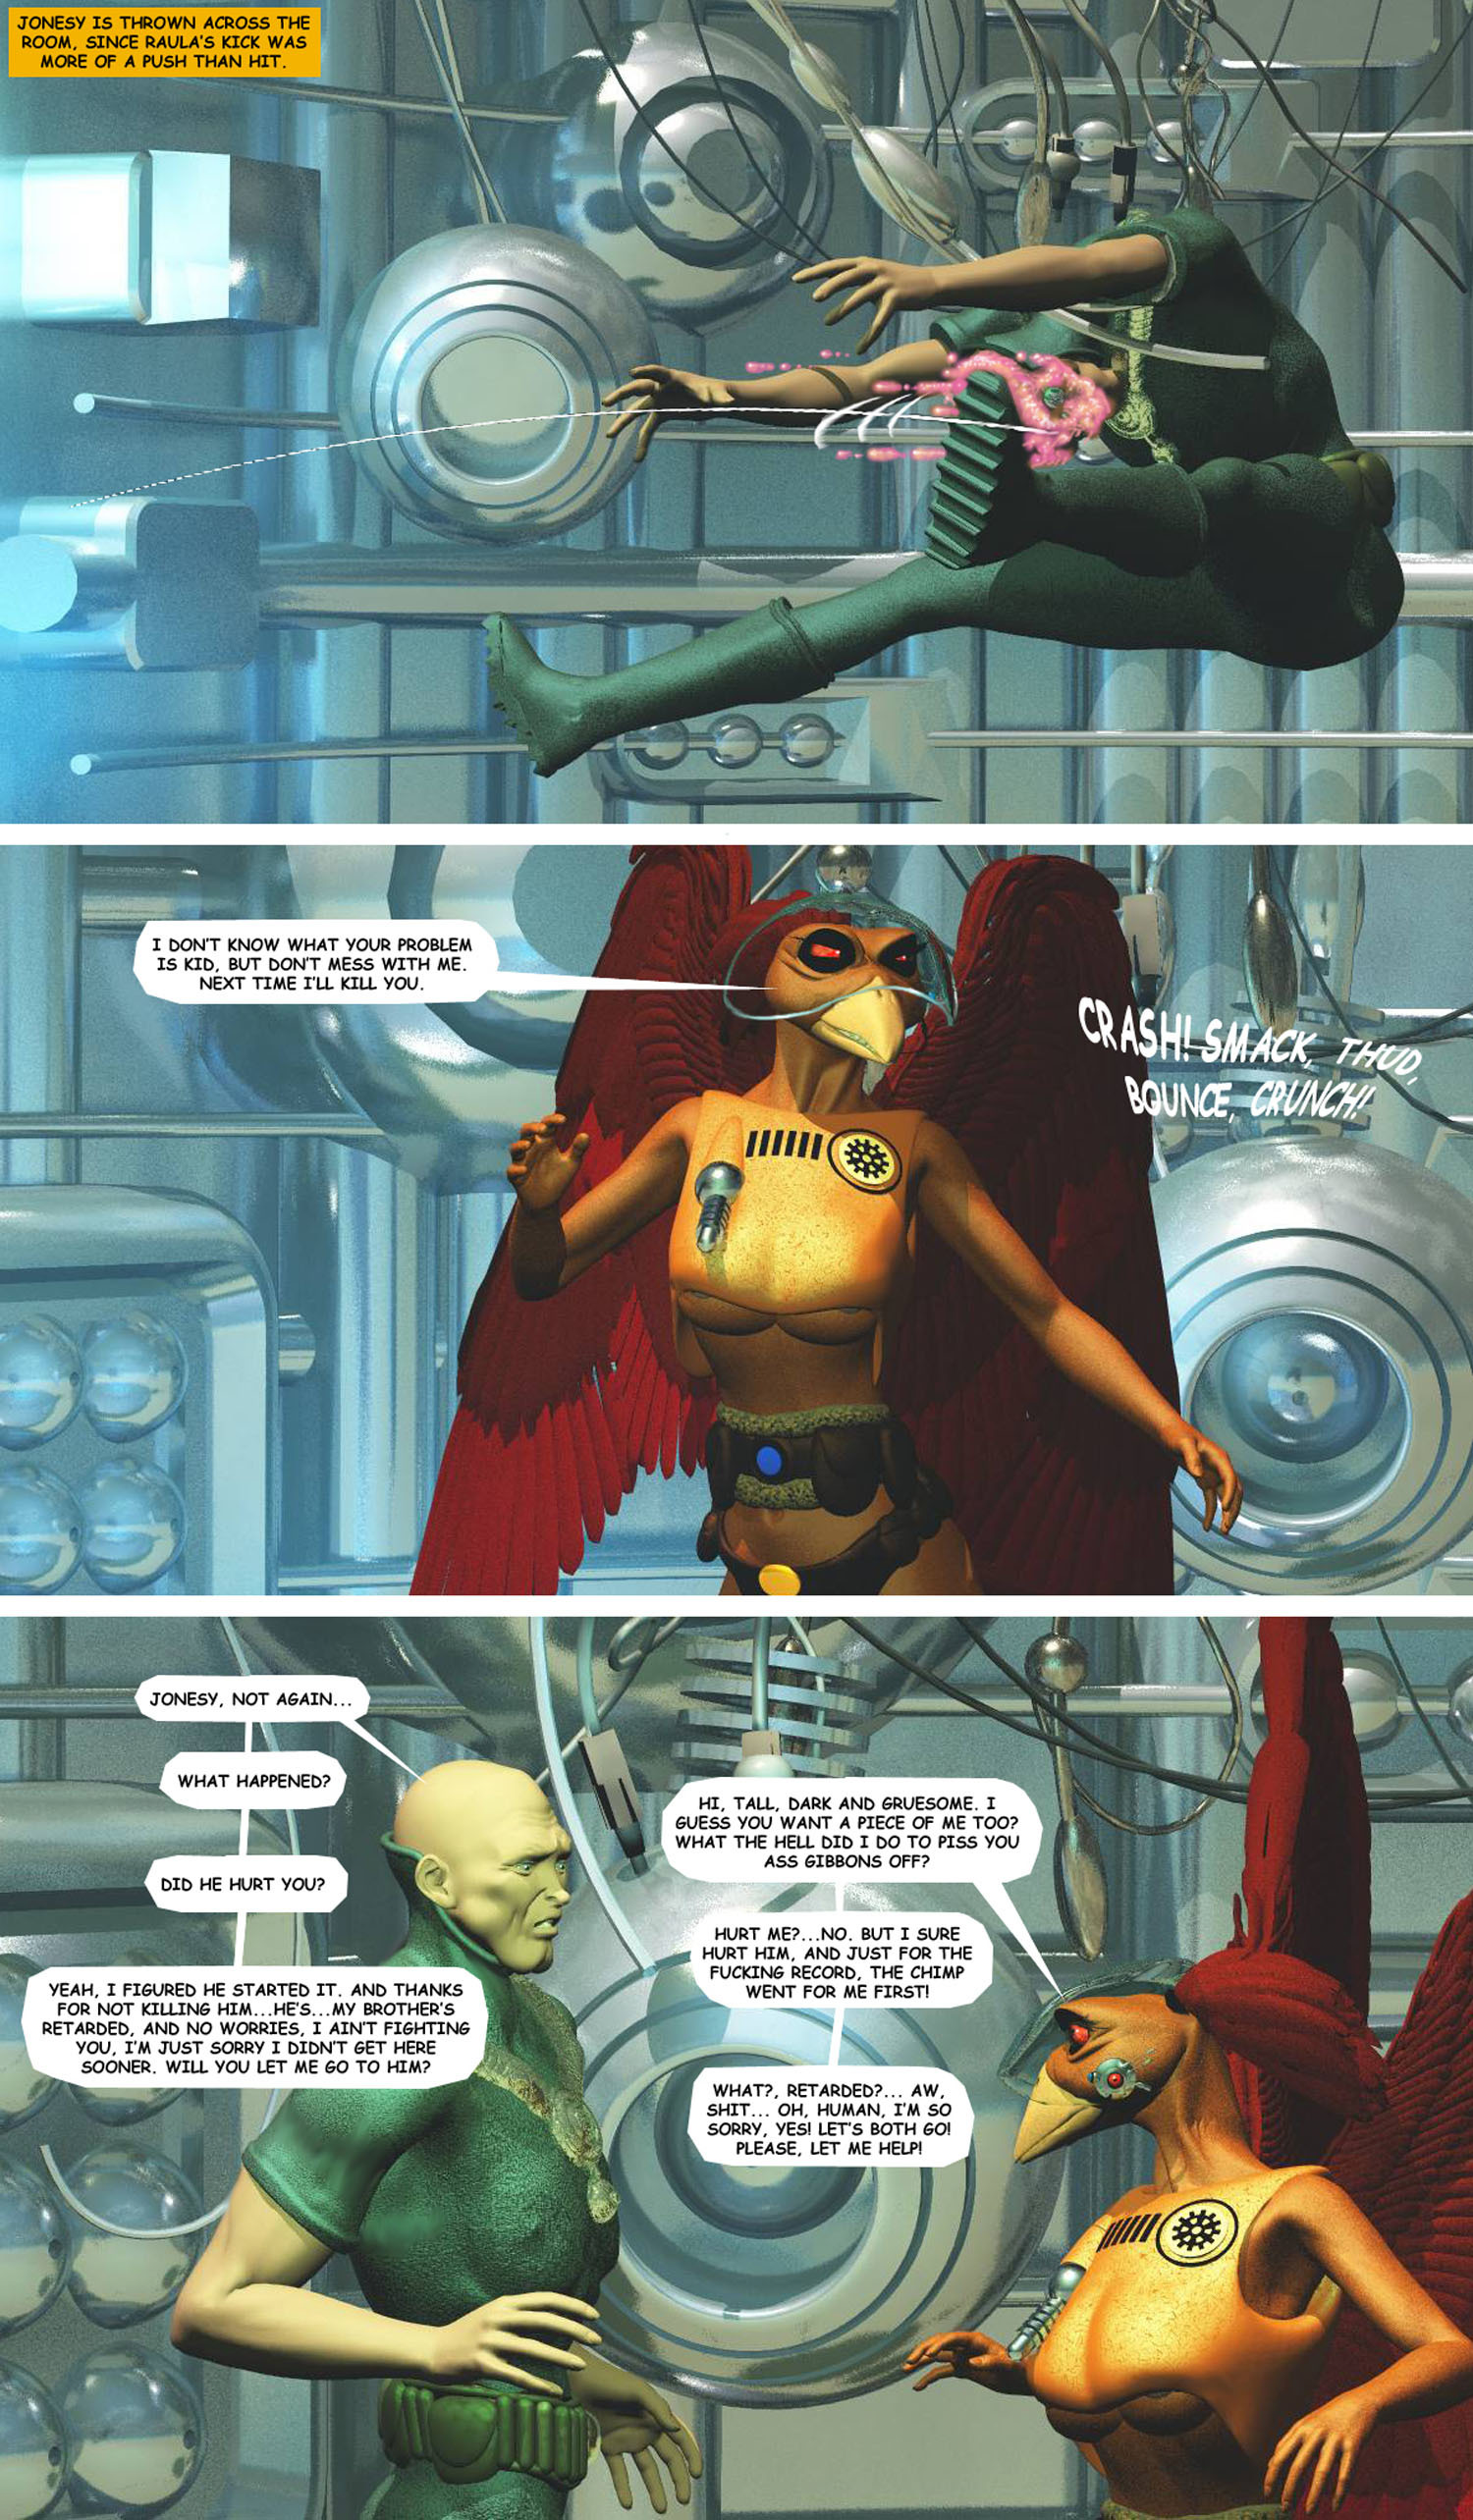 STORM OVER WHOOMERA : PAGE 61